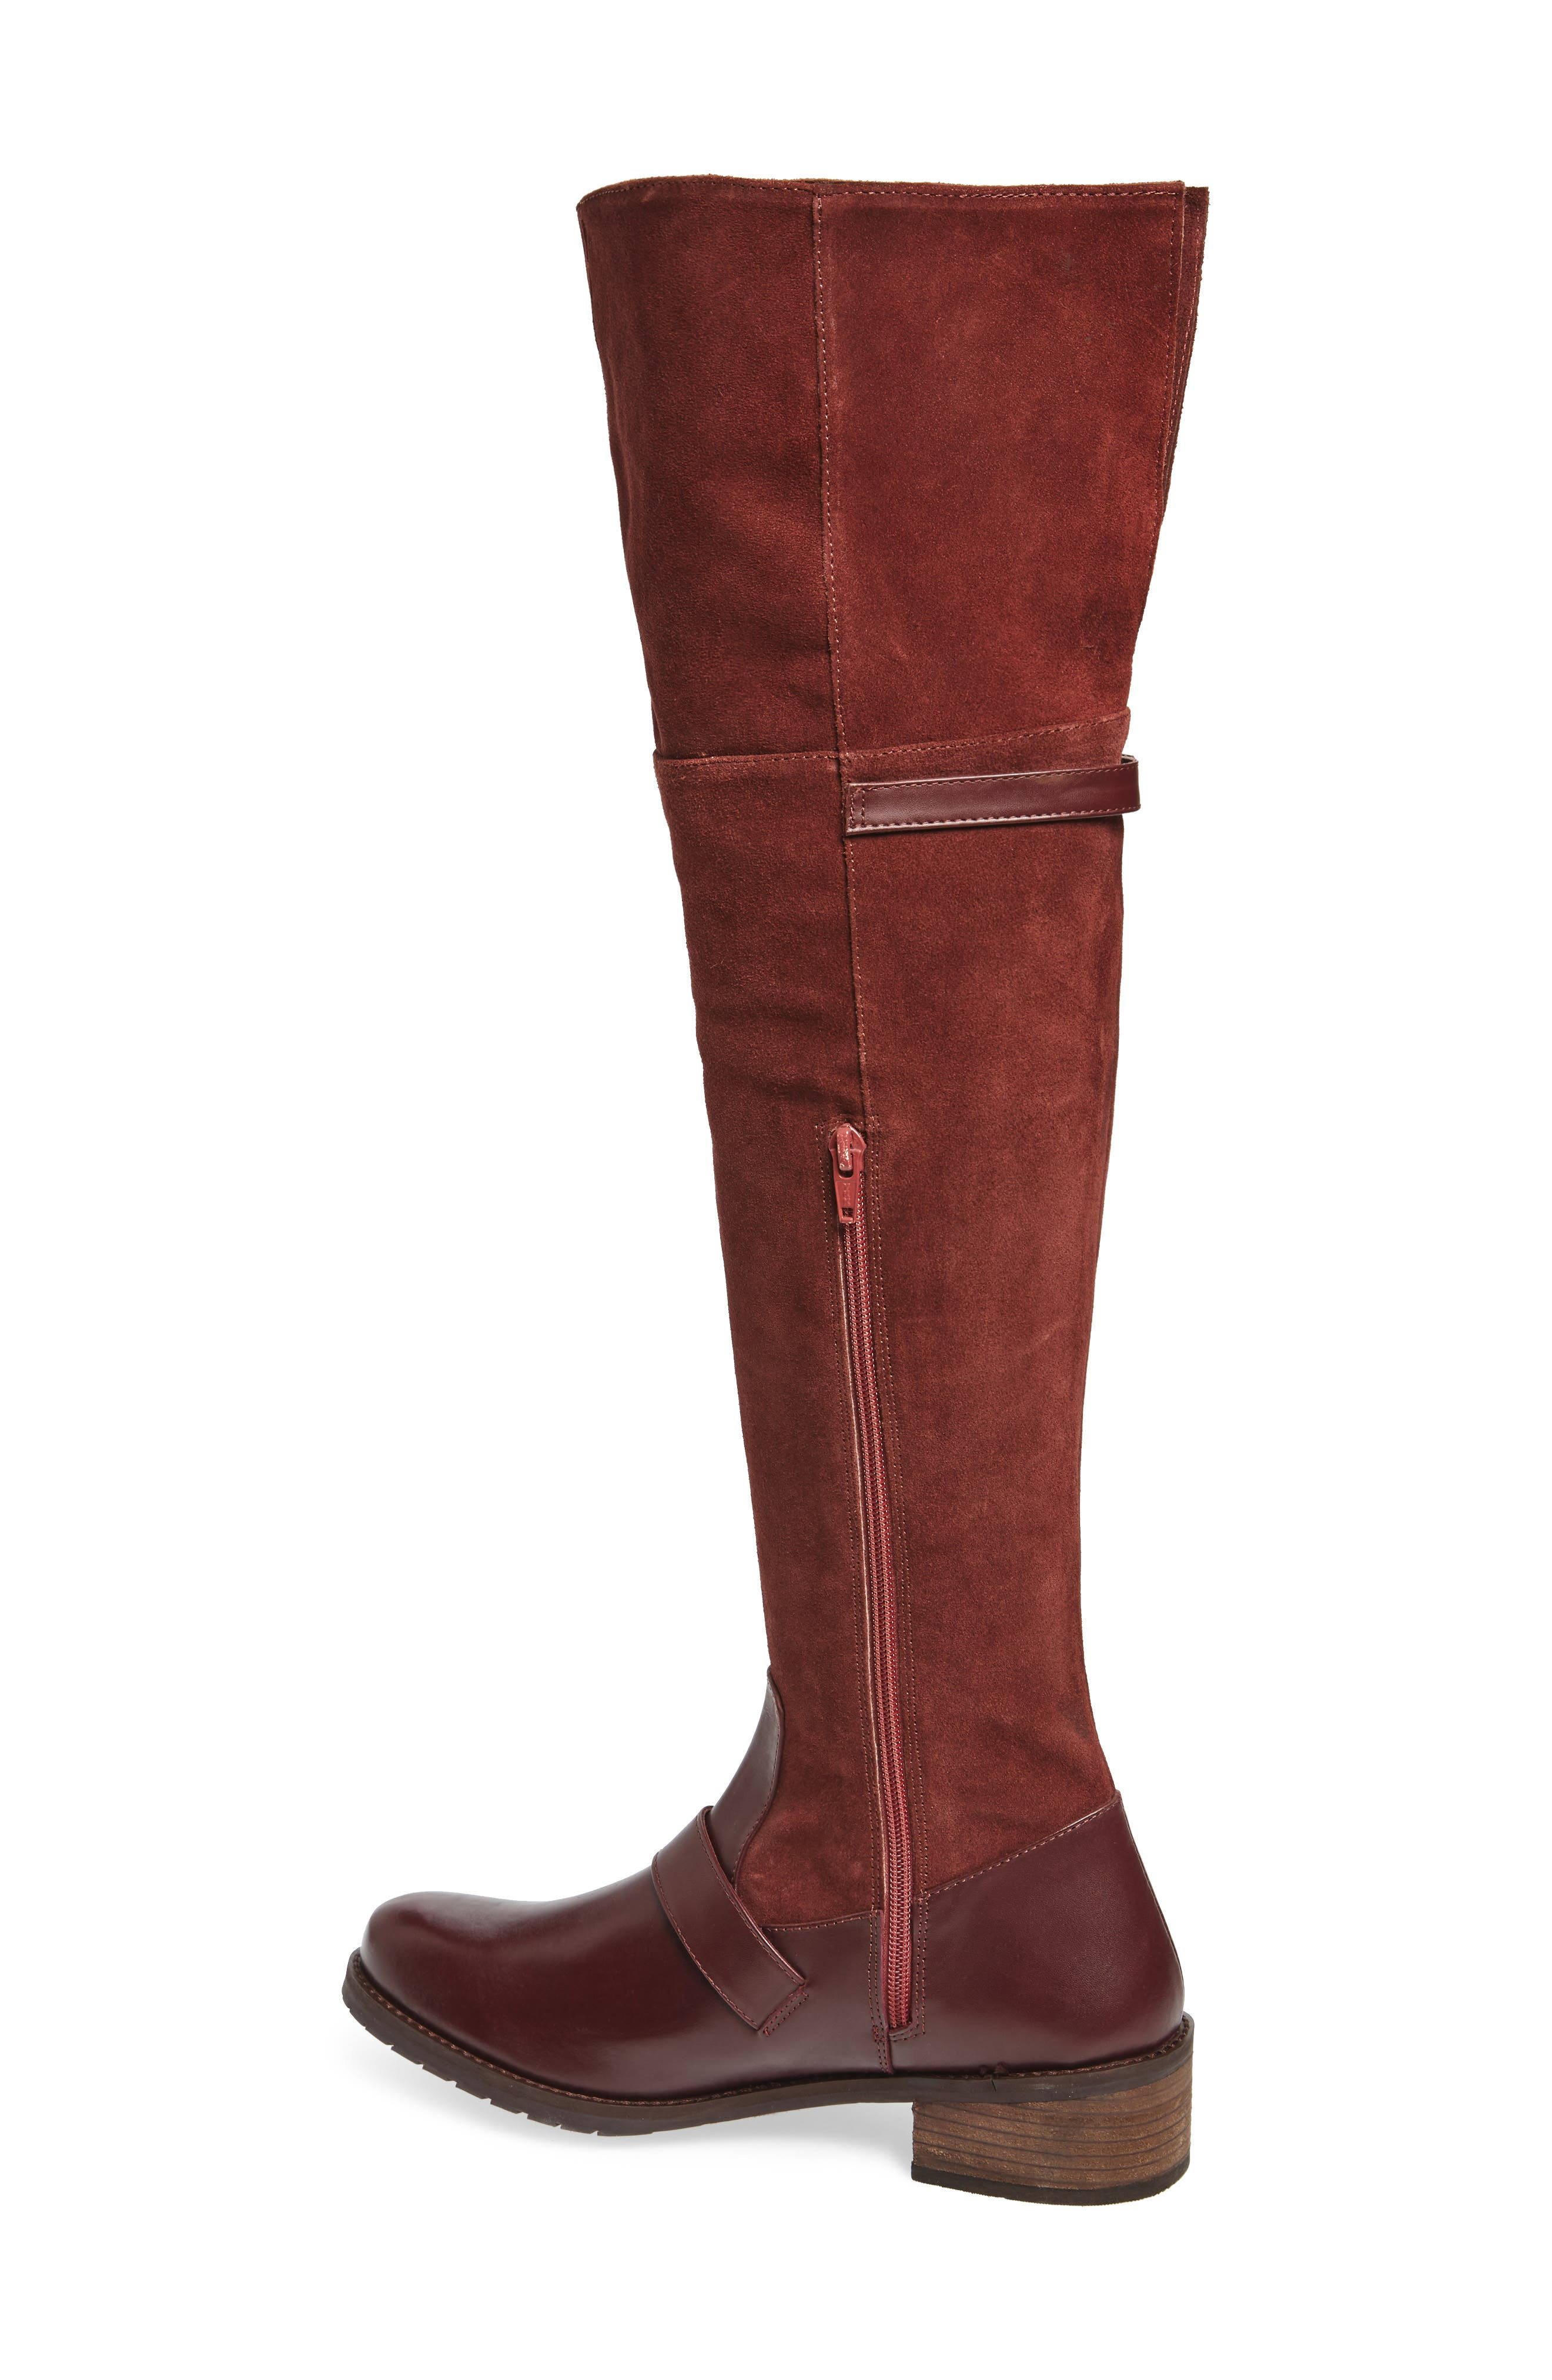 Lola Over the Knee Boot,                             Alternate thumbnail 2, color,                             Wine Suede